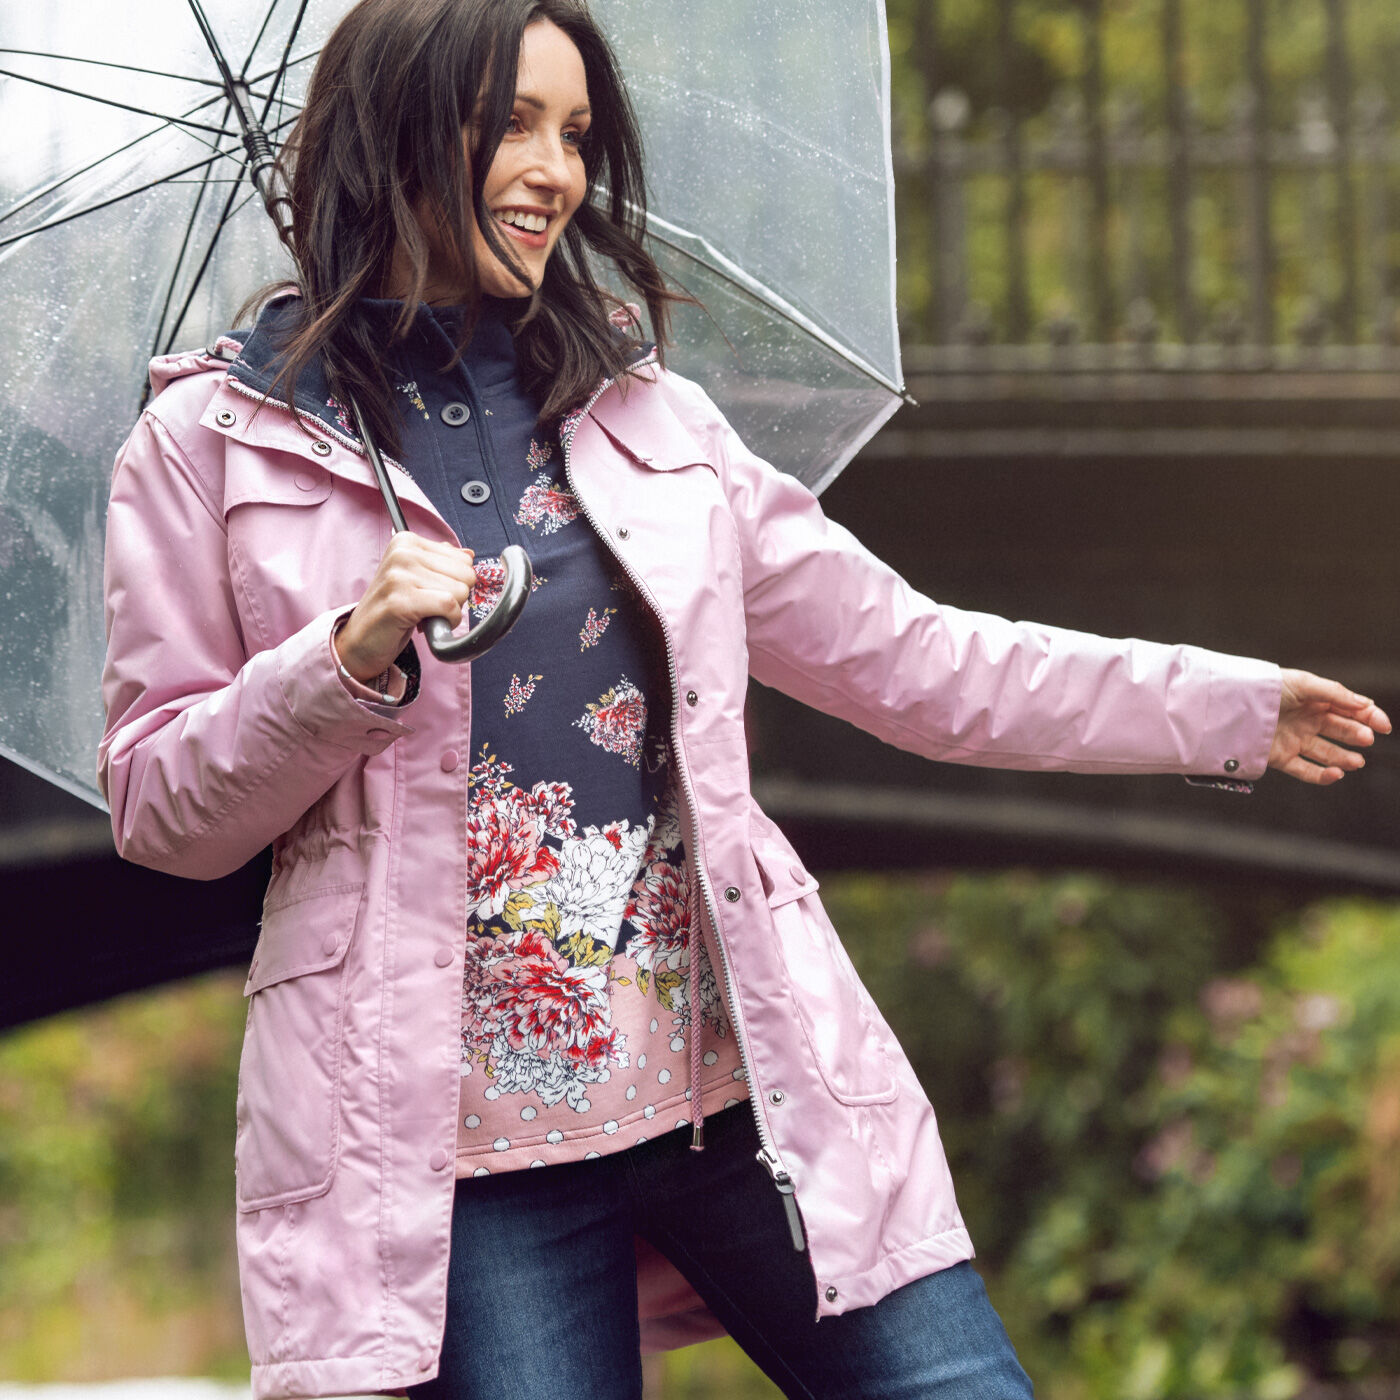 Inspire Me | The 'What Rain' Jacket | 'What Rain?' Waterproof Fleece Lined Jacket | Floral Print Button Neck Printed Sweatshirt | By Cotton Traders